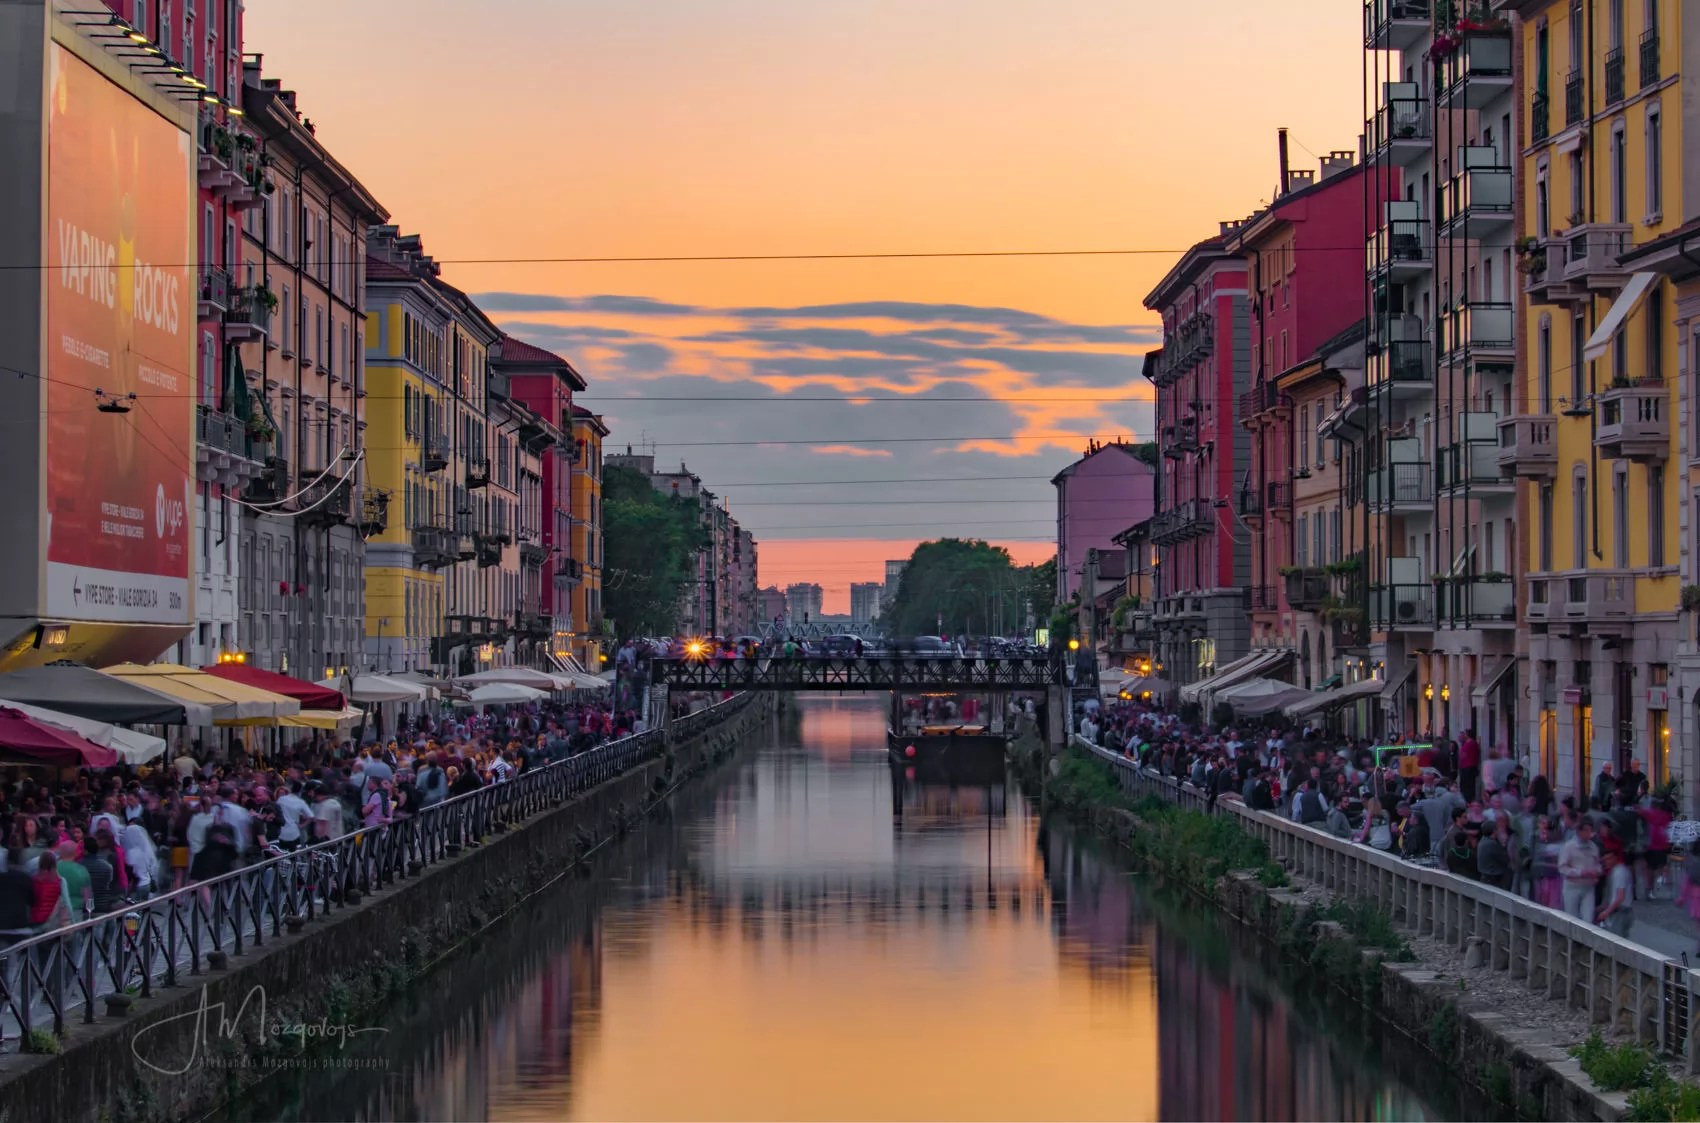 Naviglio Grande calan is a great place for photography in Milan